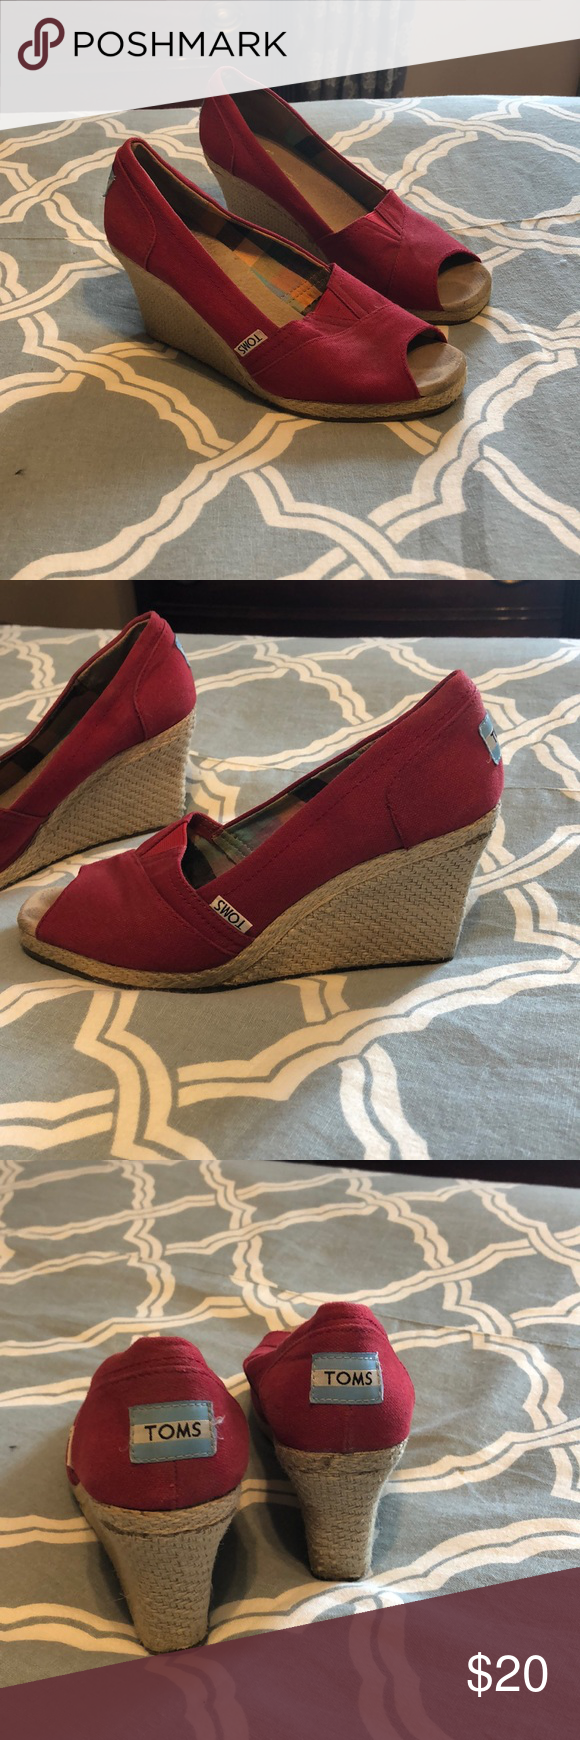 Wedges Red Tom wedges Toms Shoes Wedges #tomwedges Wedges Red Tom wedges Toms Shoes Wedges #tomwedges